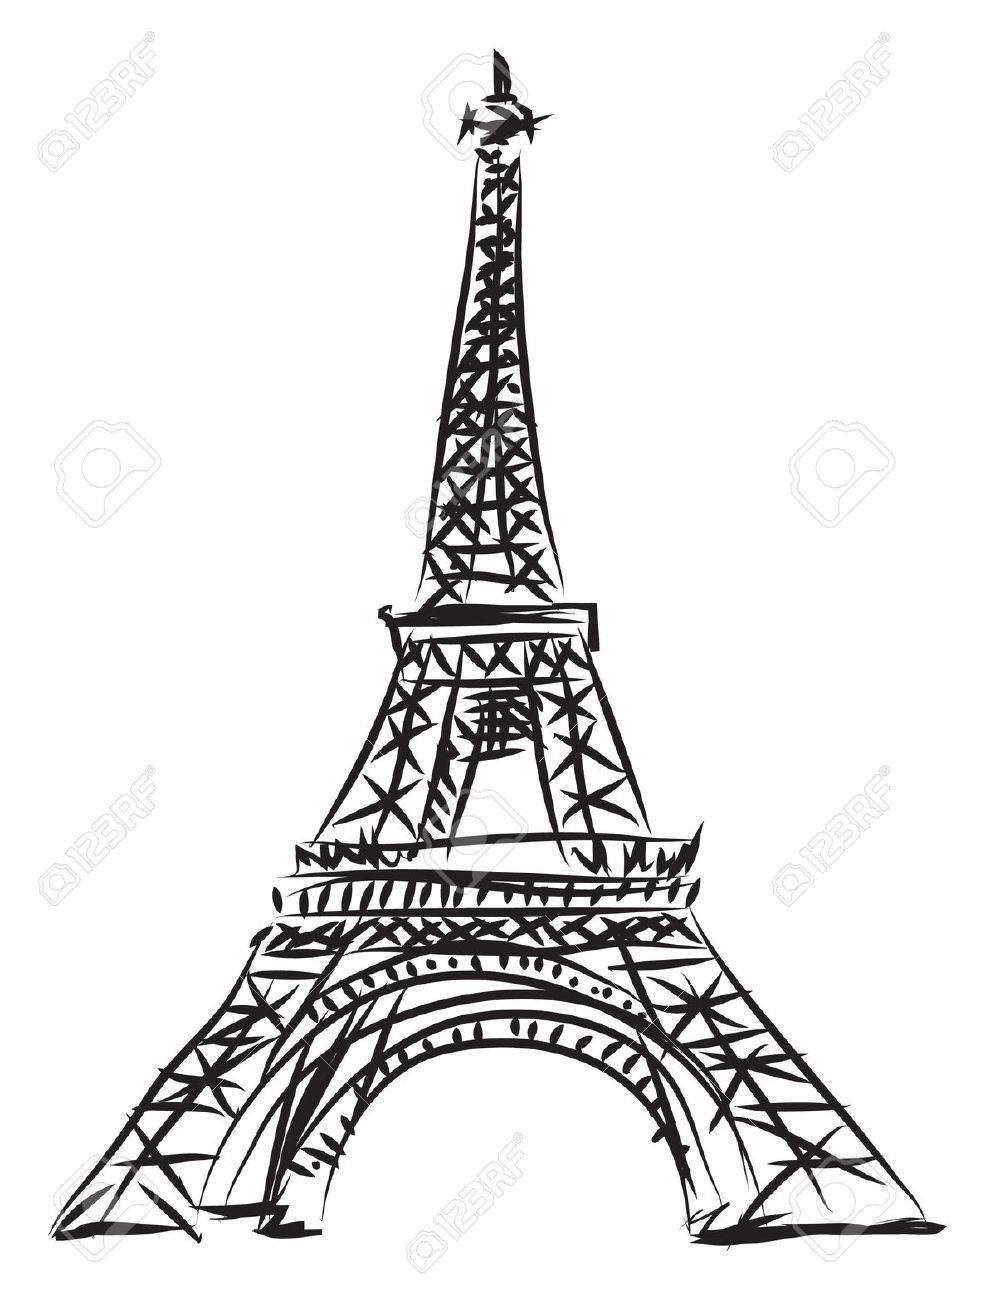 995x1300 Drawn Eiffel Tower Clipart